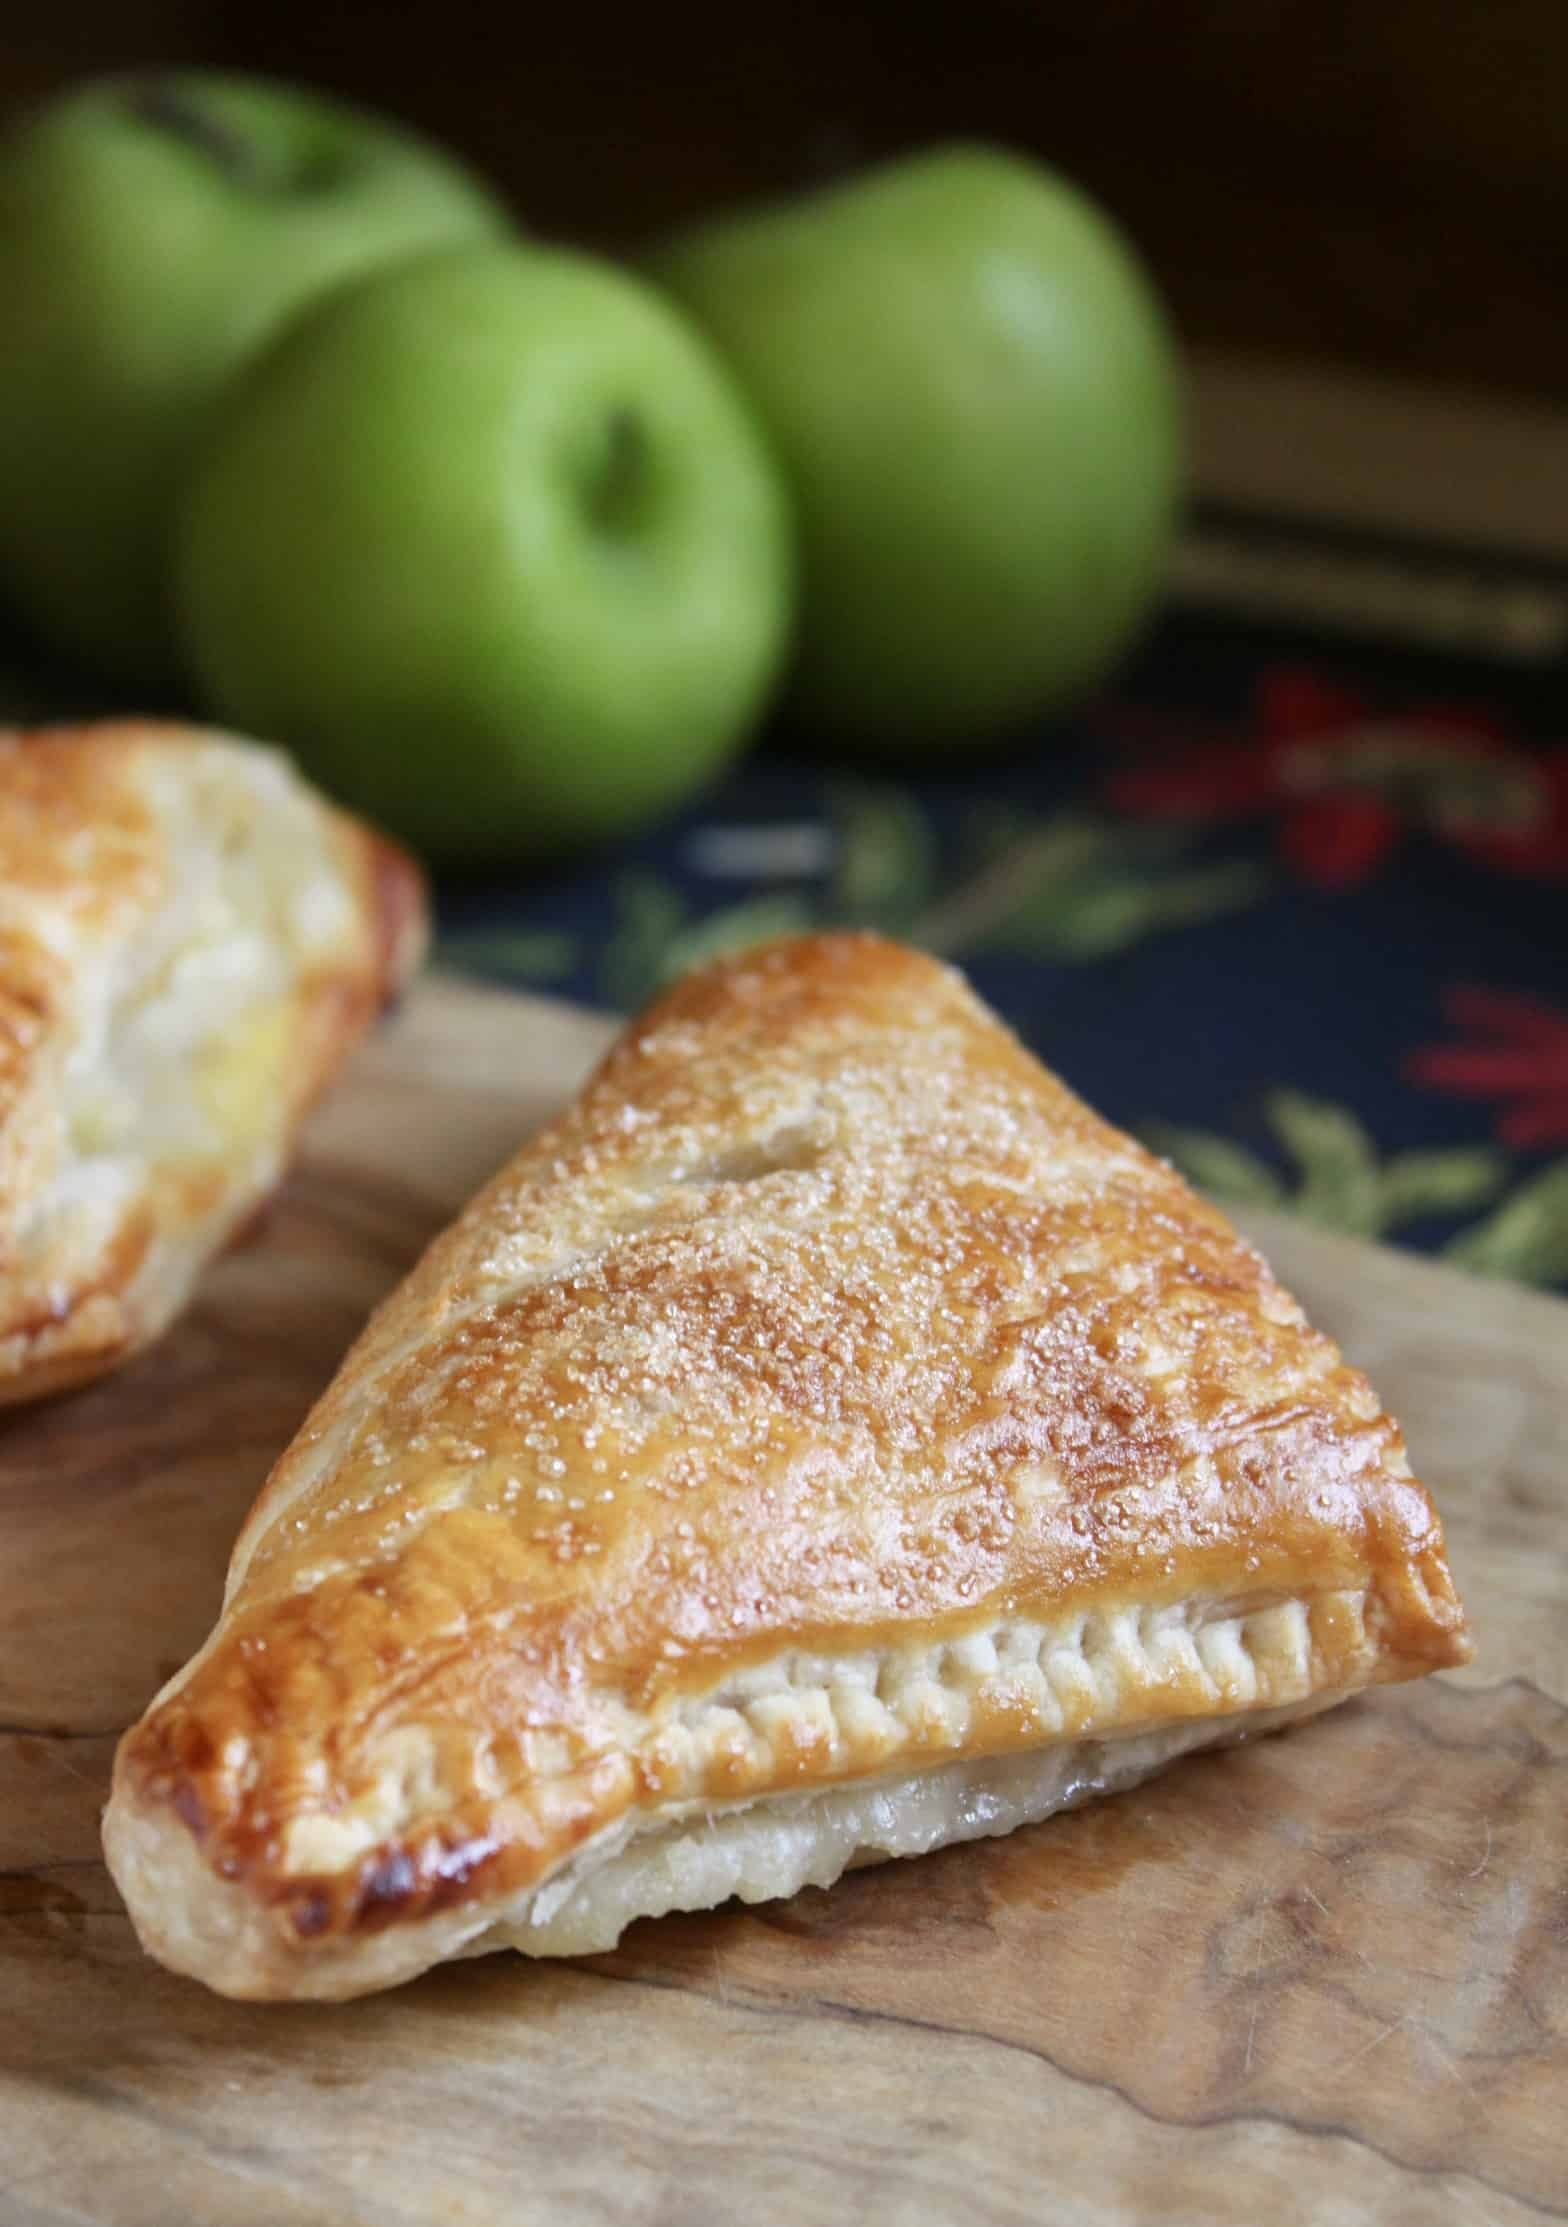 apple turnover on a board with green apples